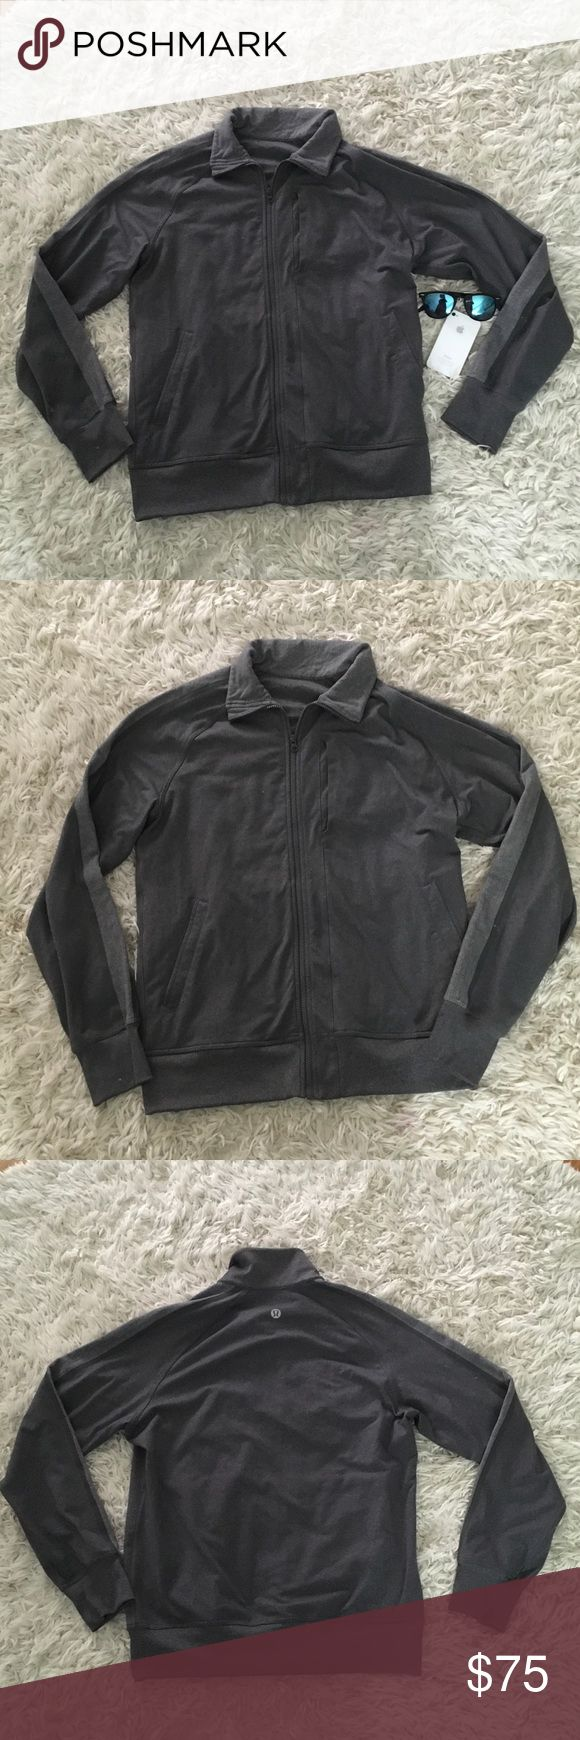 Lululemon Men's Kung Full II Jacket Hereingbone This is in excellent condition!  It is stretchy with a medium thickness.  It has two side pockets which can accommodate all of your essentials!  Perfect for any time of the year. lululemon athletica Jackets & Coats